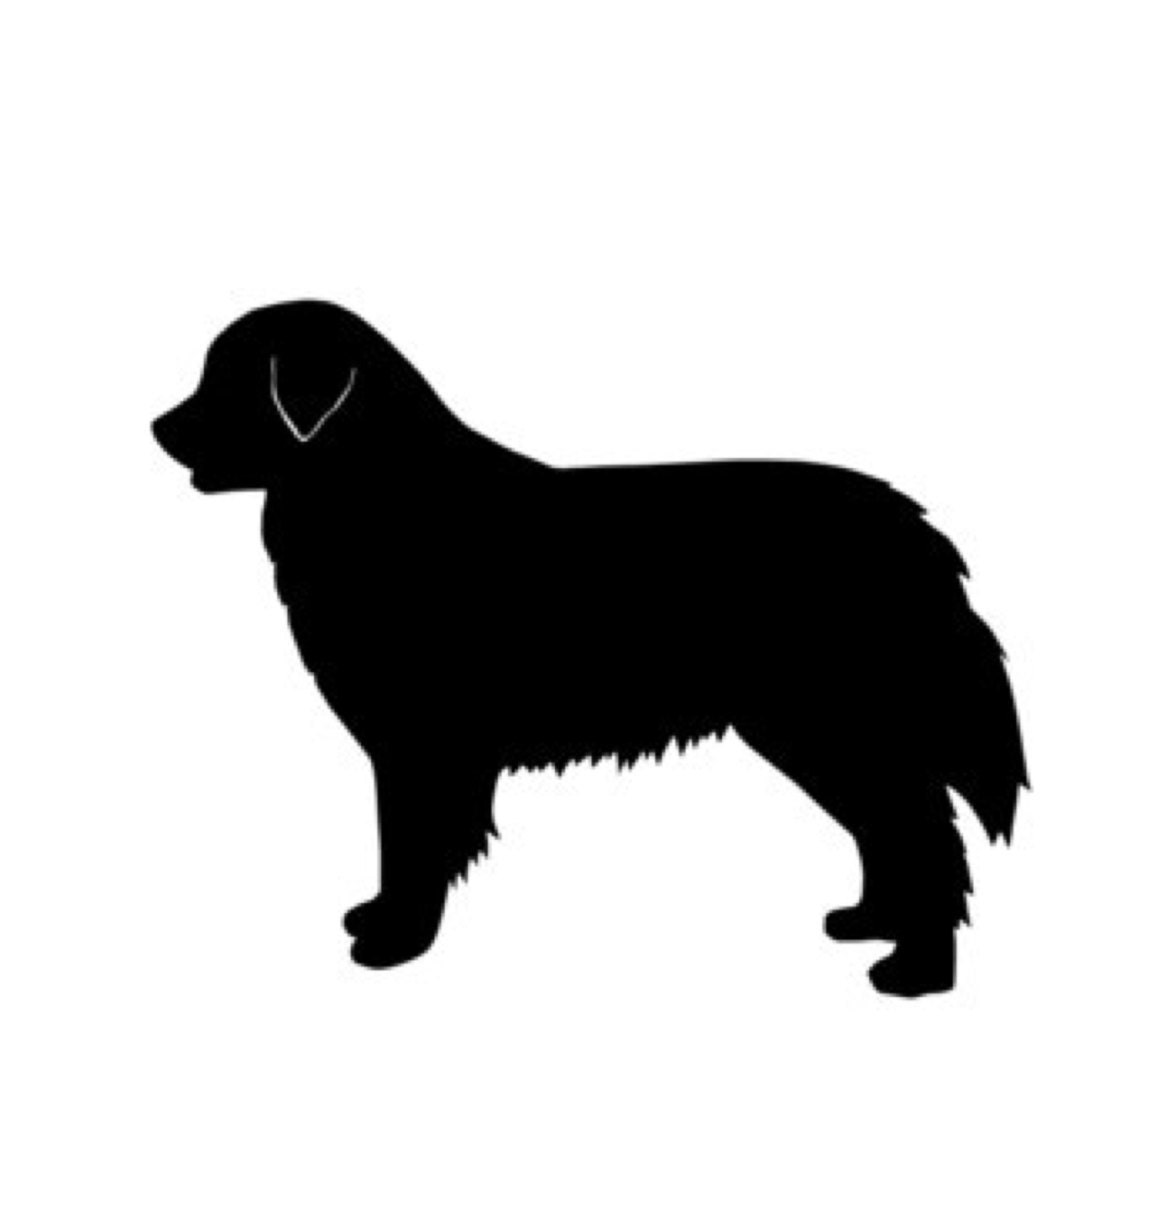 Burnese Mountain Dog Stencil Made From 4 Ply Mat Board